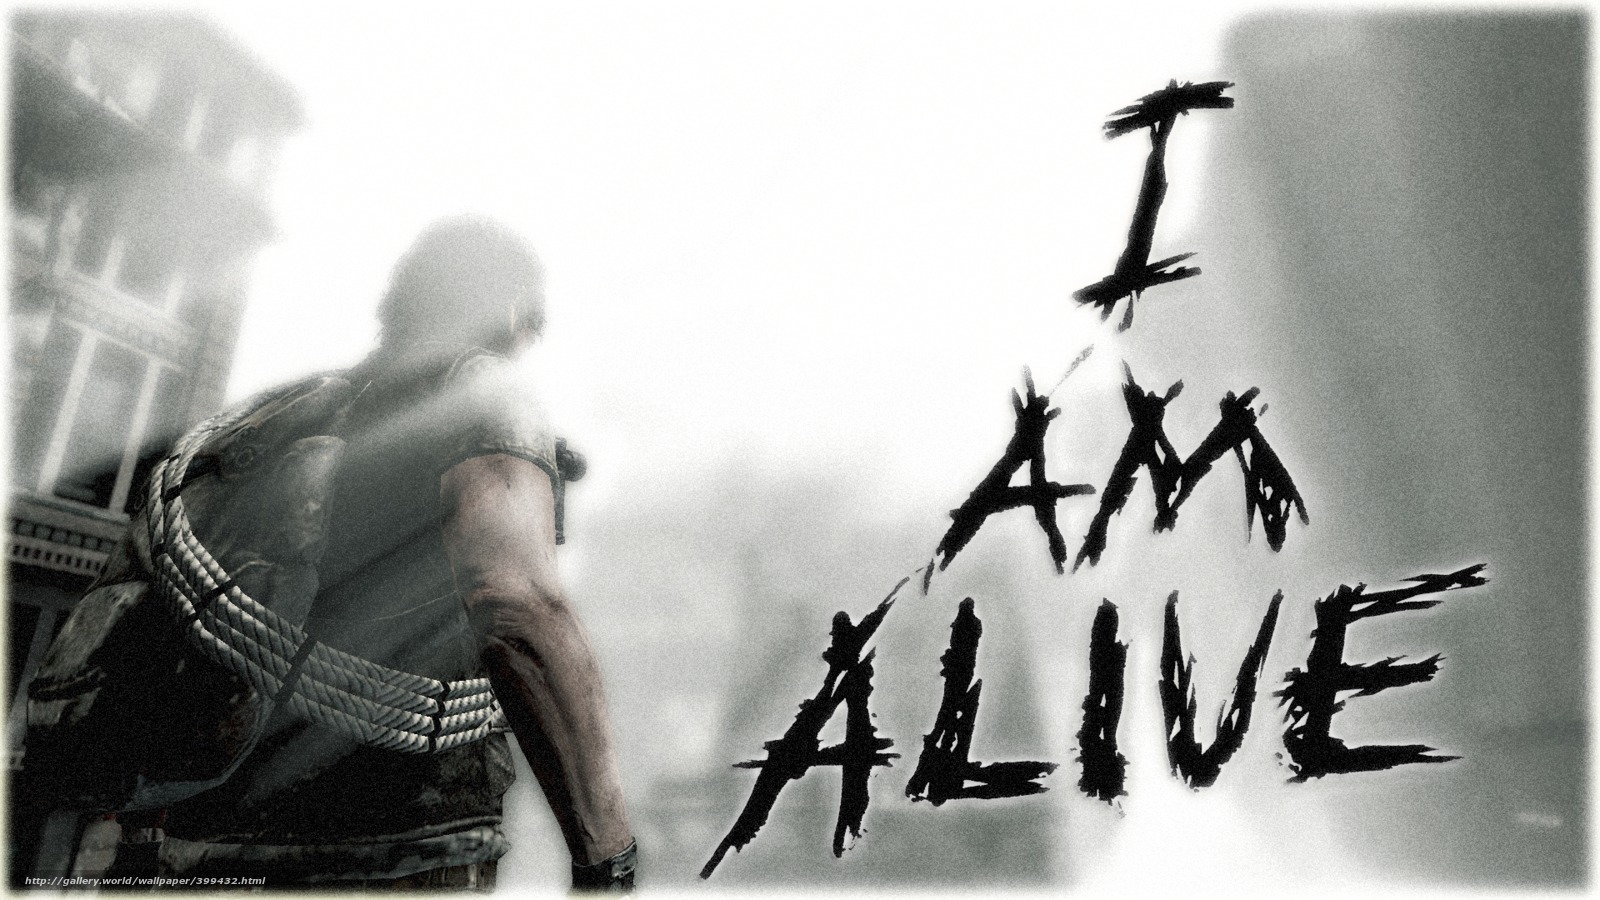 Compressed Pc Games Download I Am Alive Compressed Pc Game Download 1600x900